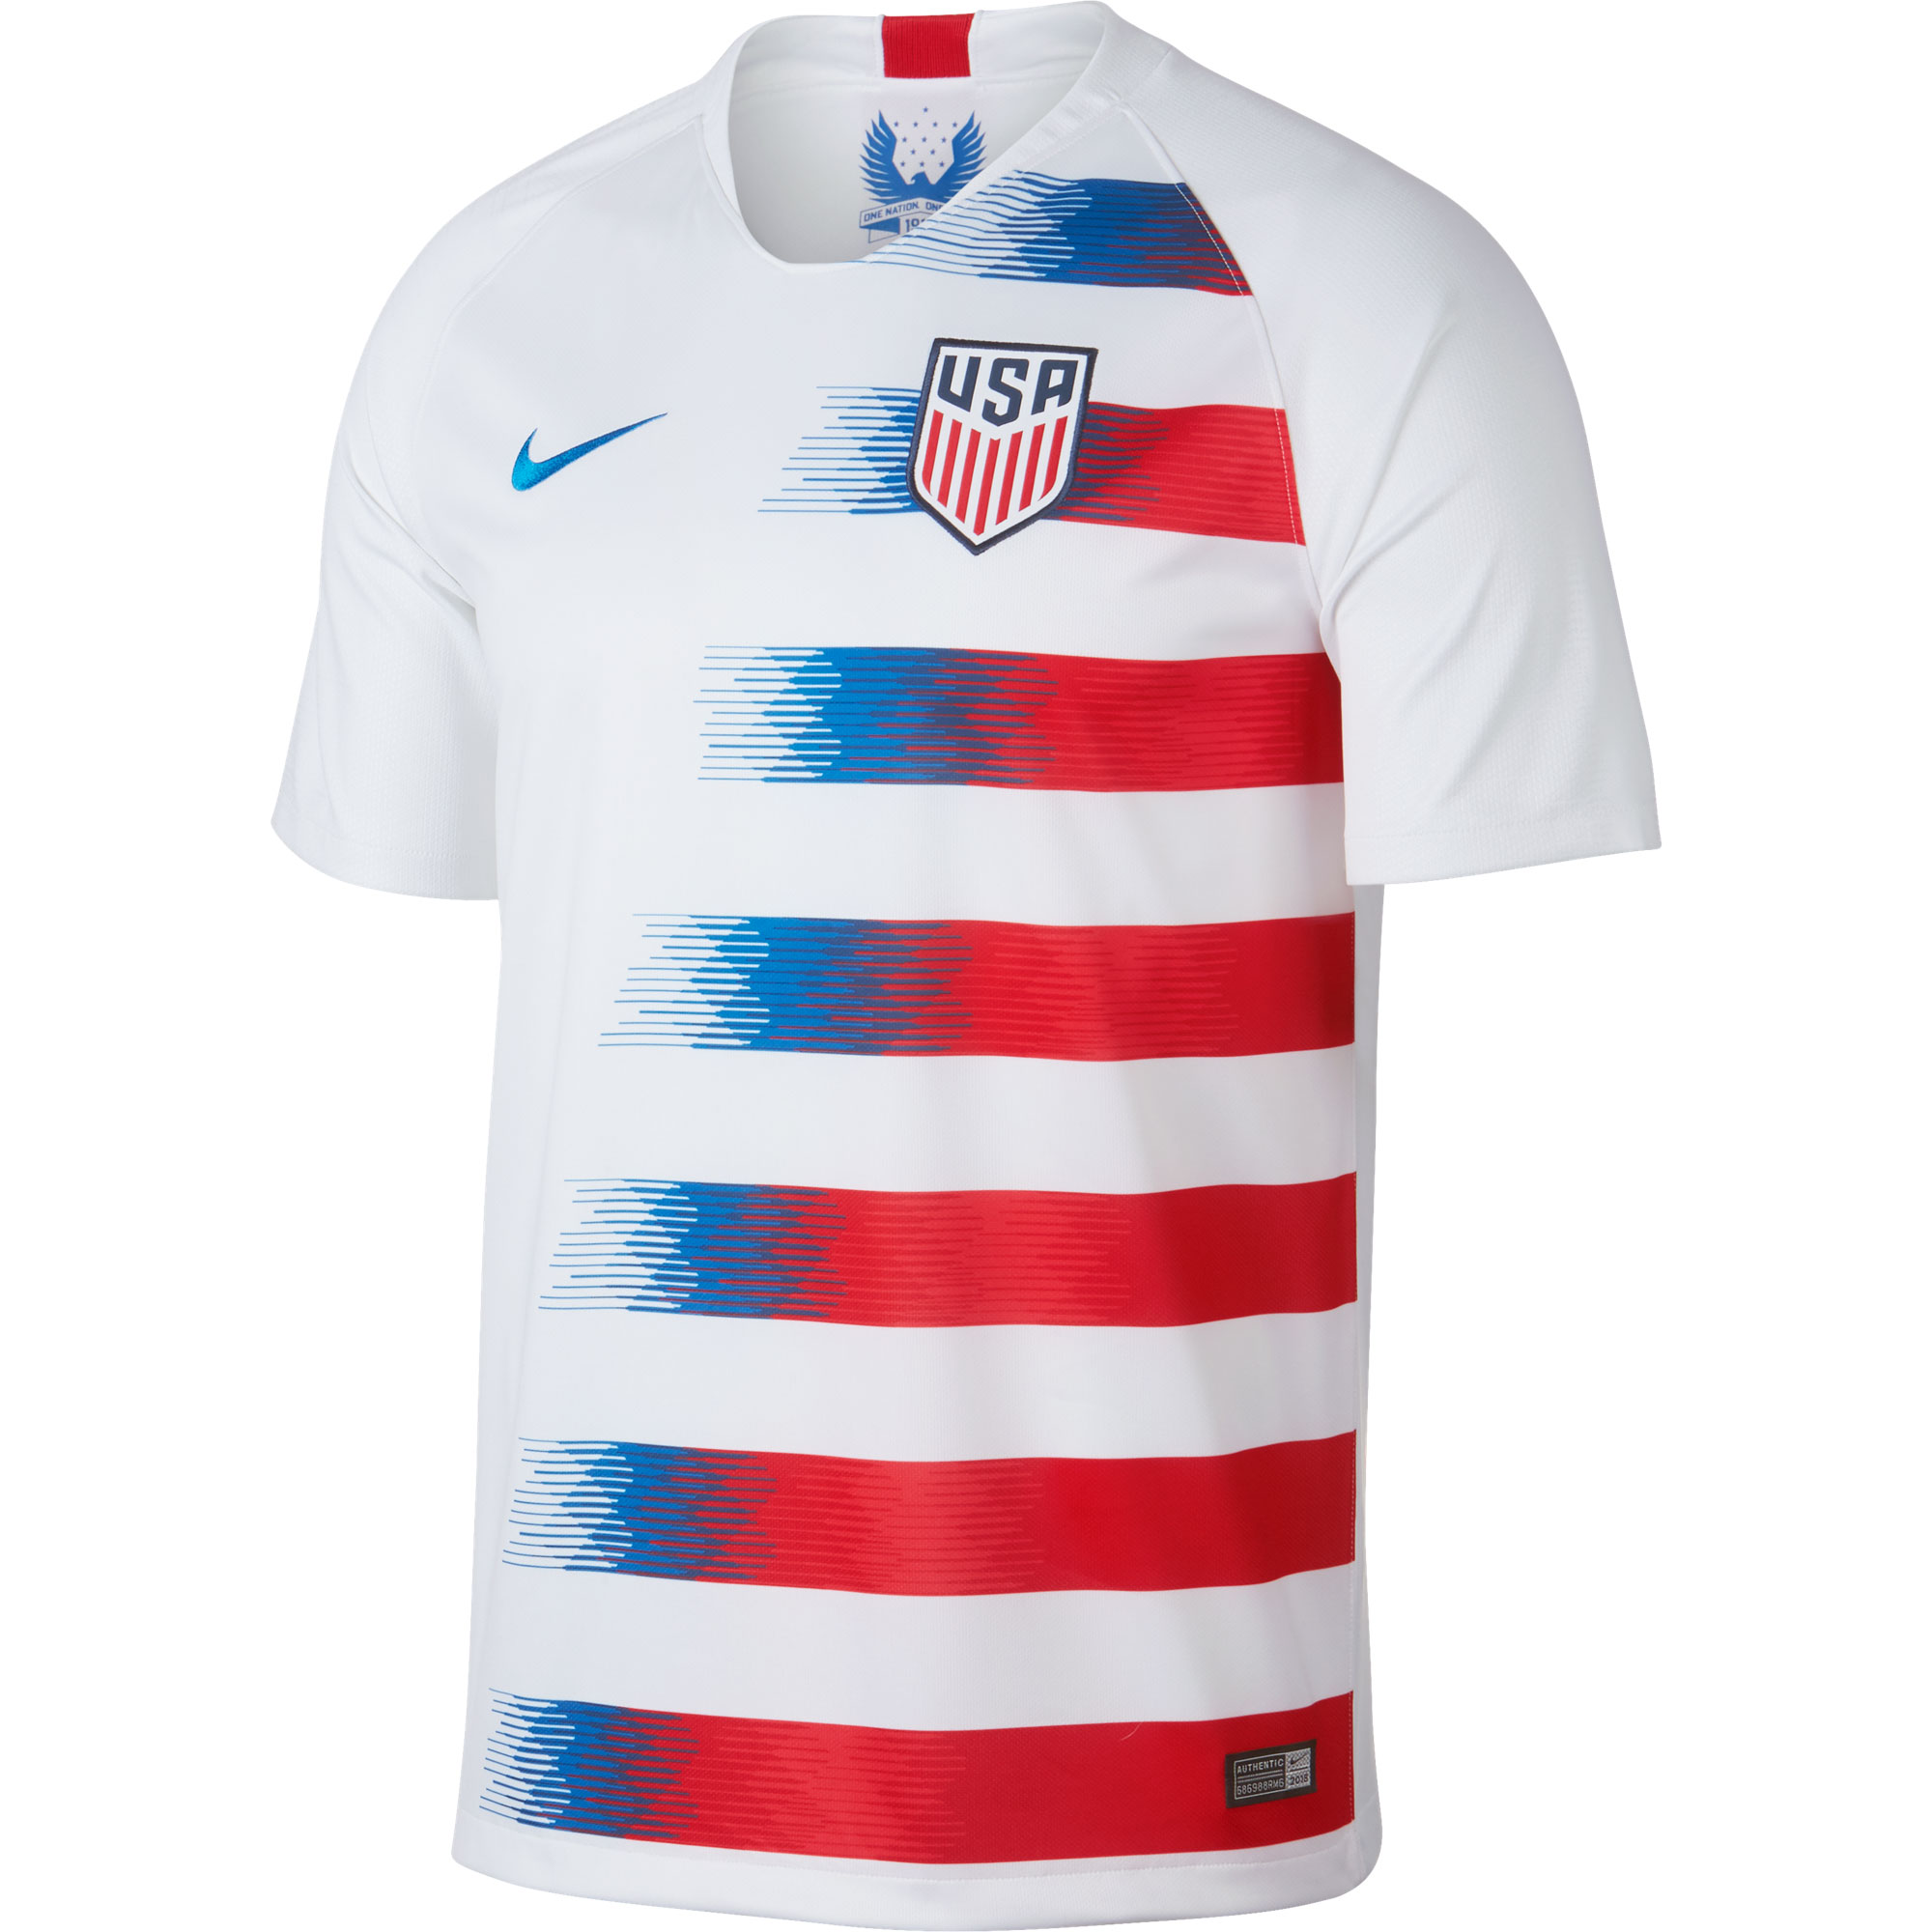 cdce1add5 USA Football Kits